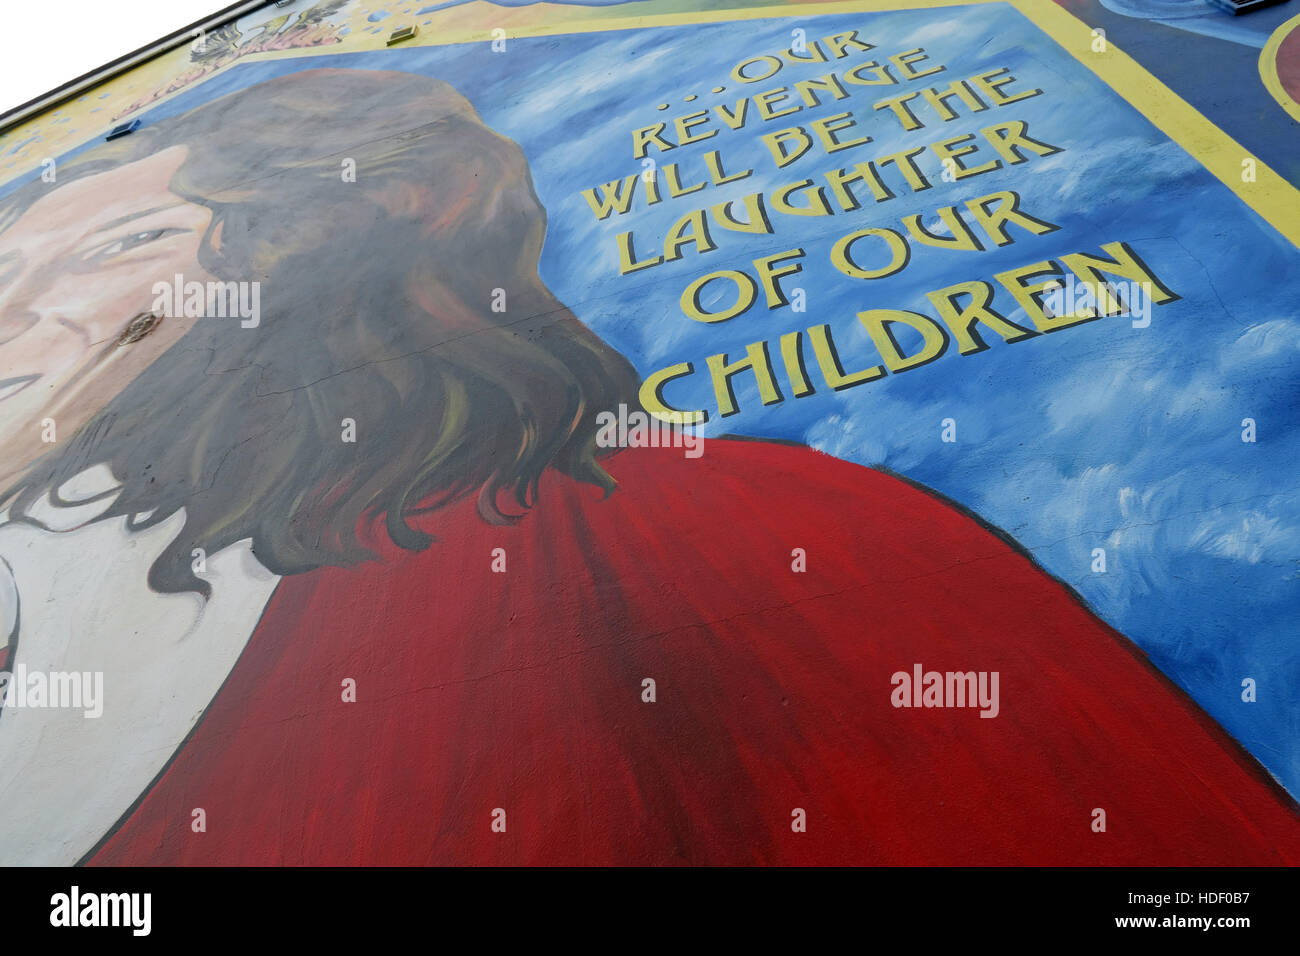 Our Revenge will be the laughter of our children - Belfast Falls Rd Republican Mural to Bobby Sands MP. - Stock Image